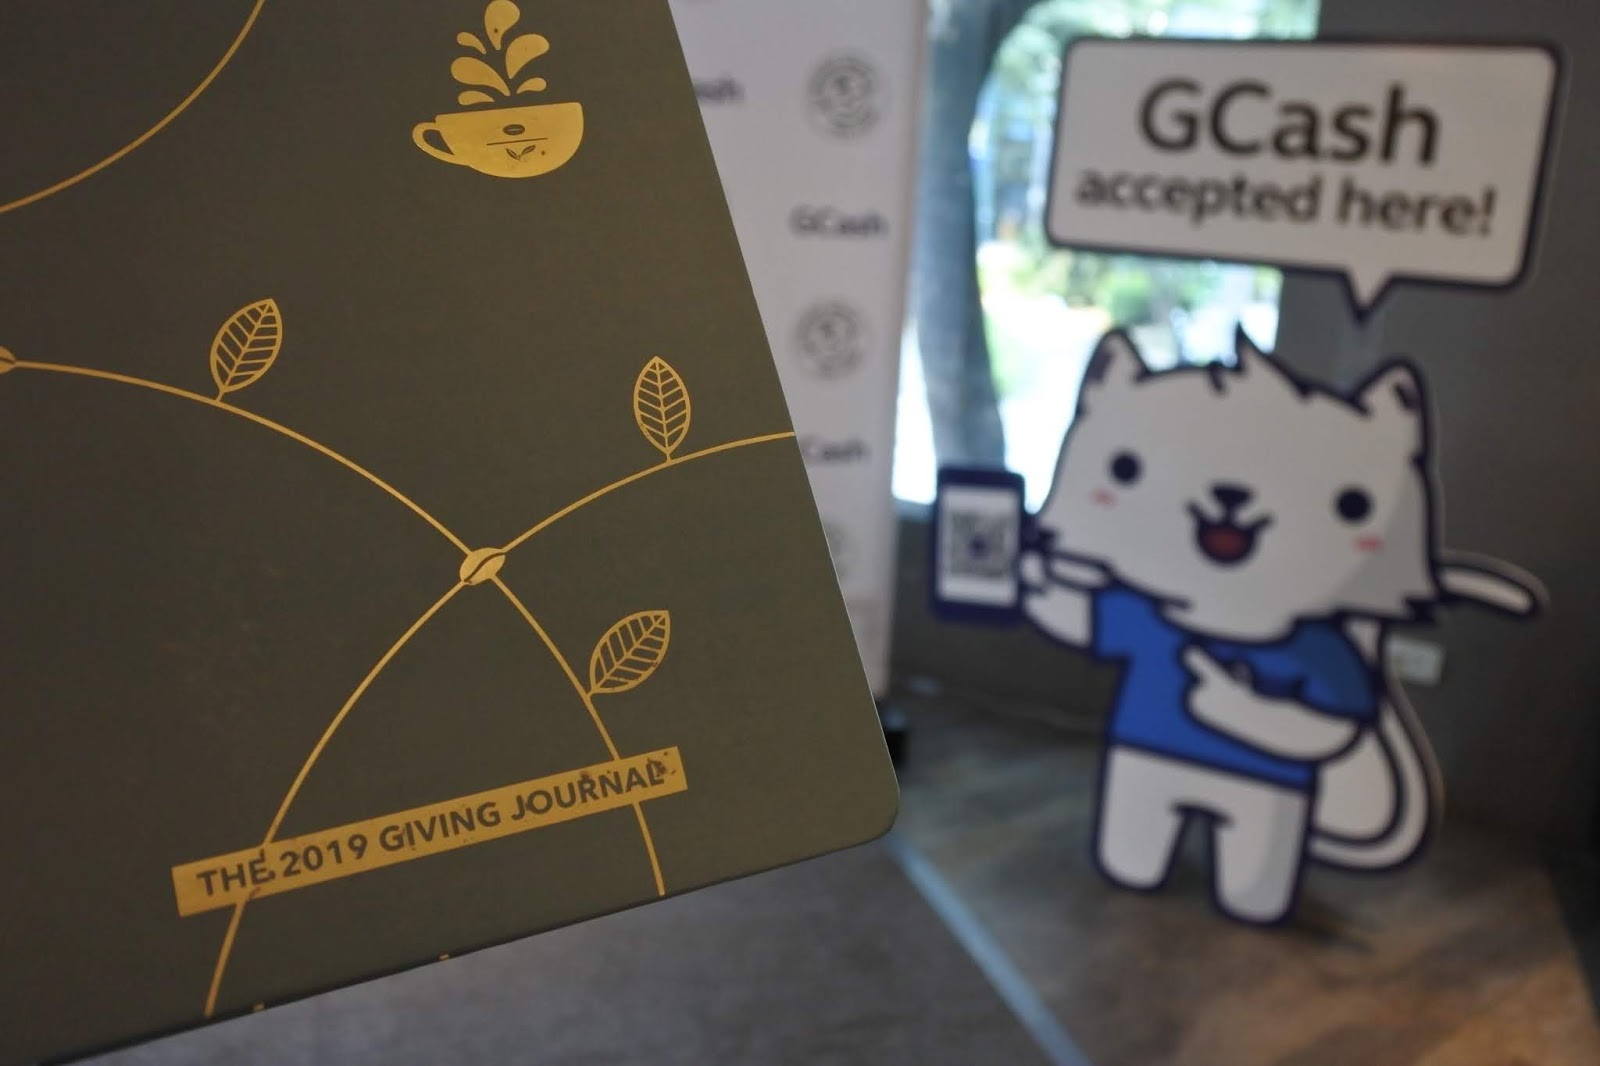 The Coffee Bean and Tea Leaf is Now A GCash QR Scan-to-Pay